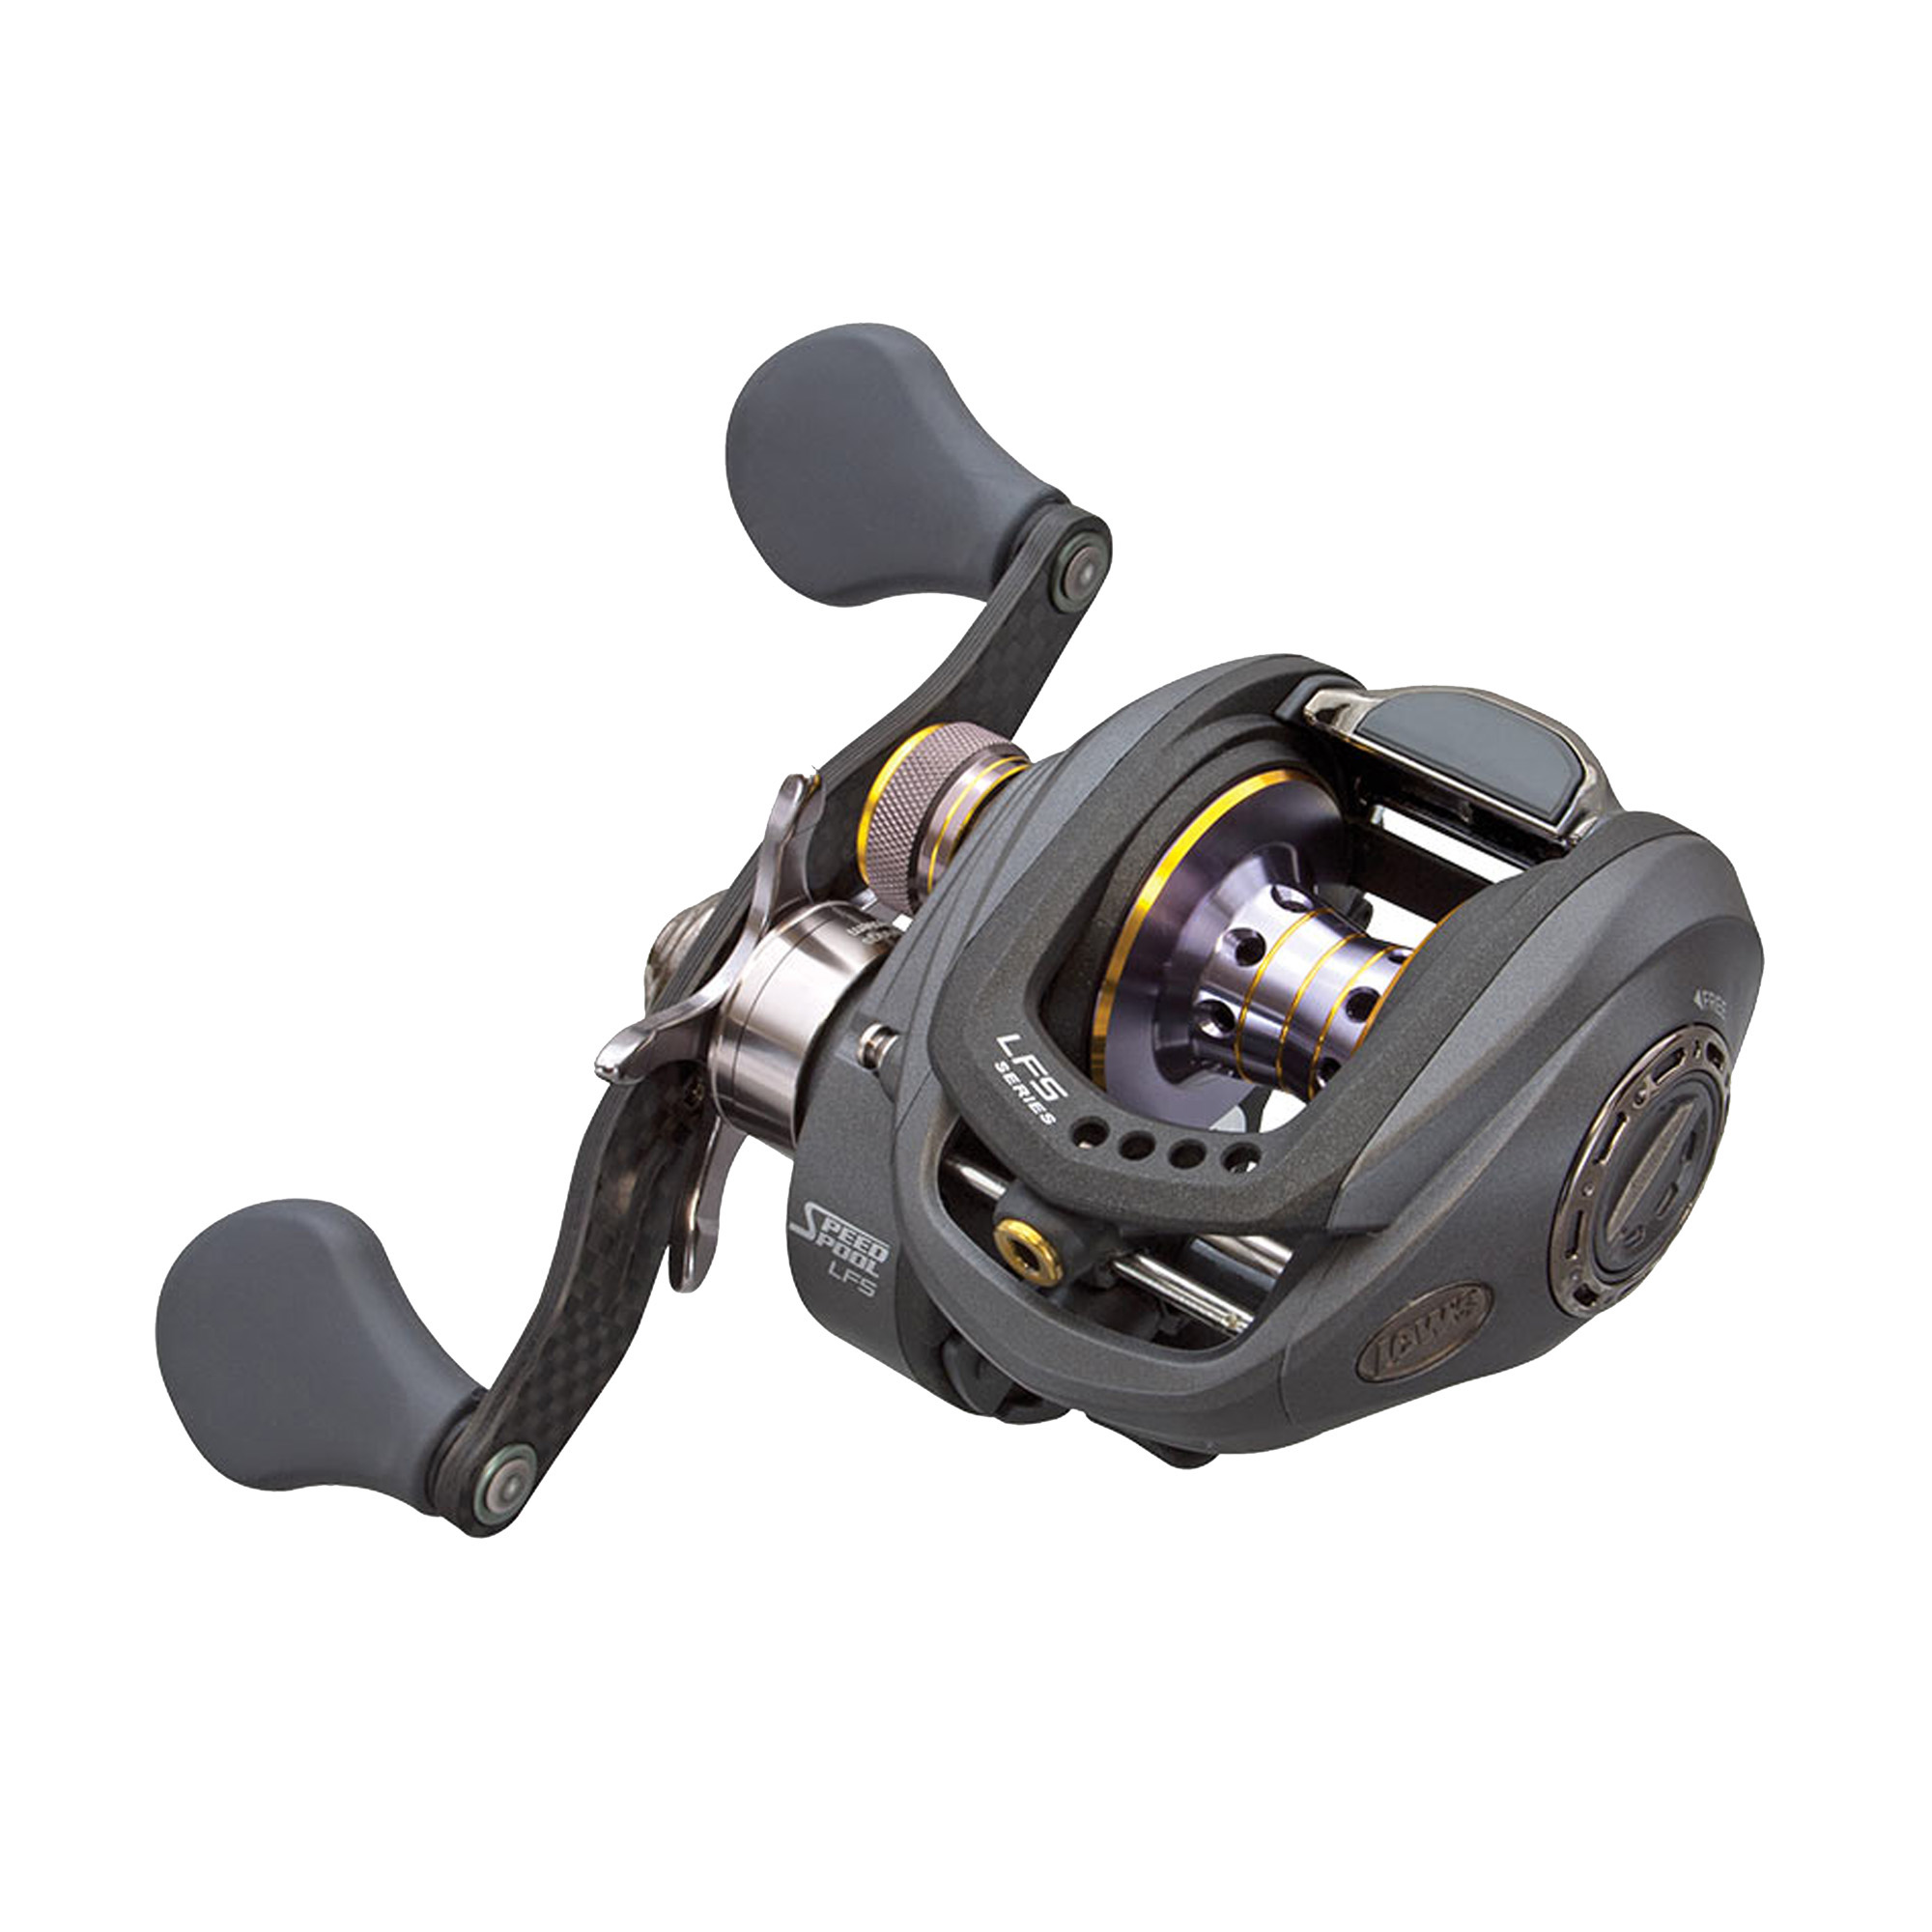 "Lews Fishing Tournament Pro G Speed Spool Reel 35"" IPT, 8.3:1 Gear Ratio, 10+1 Bearings, Right Hand by Lews Fishing"